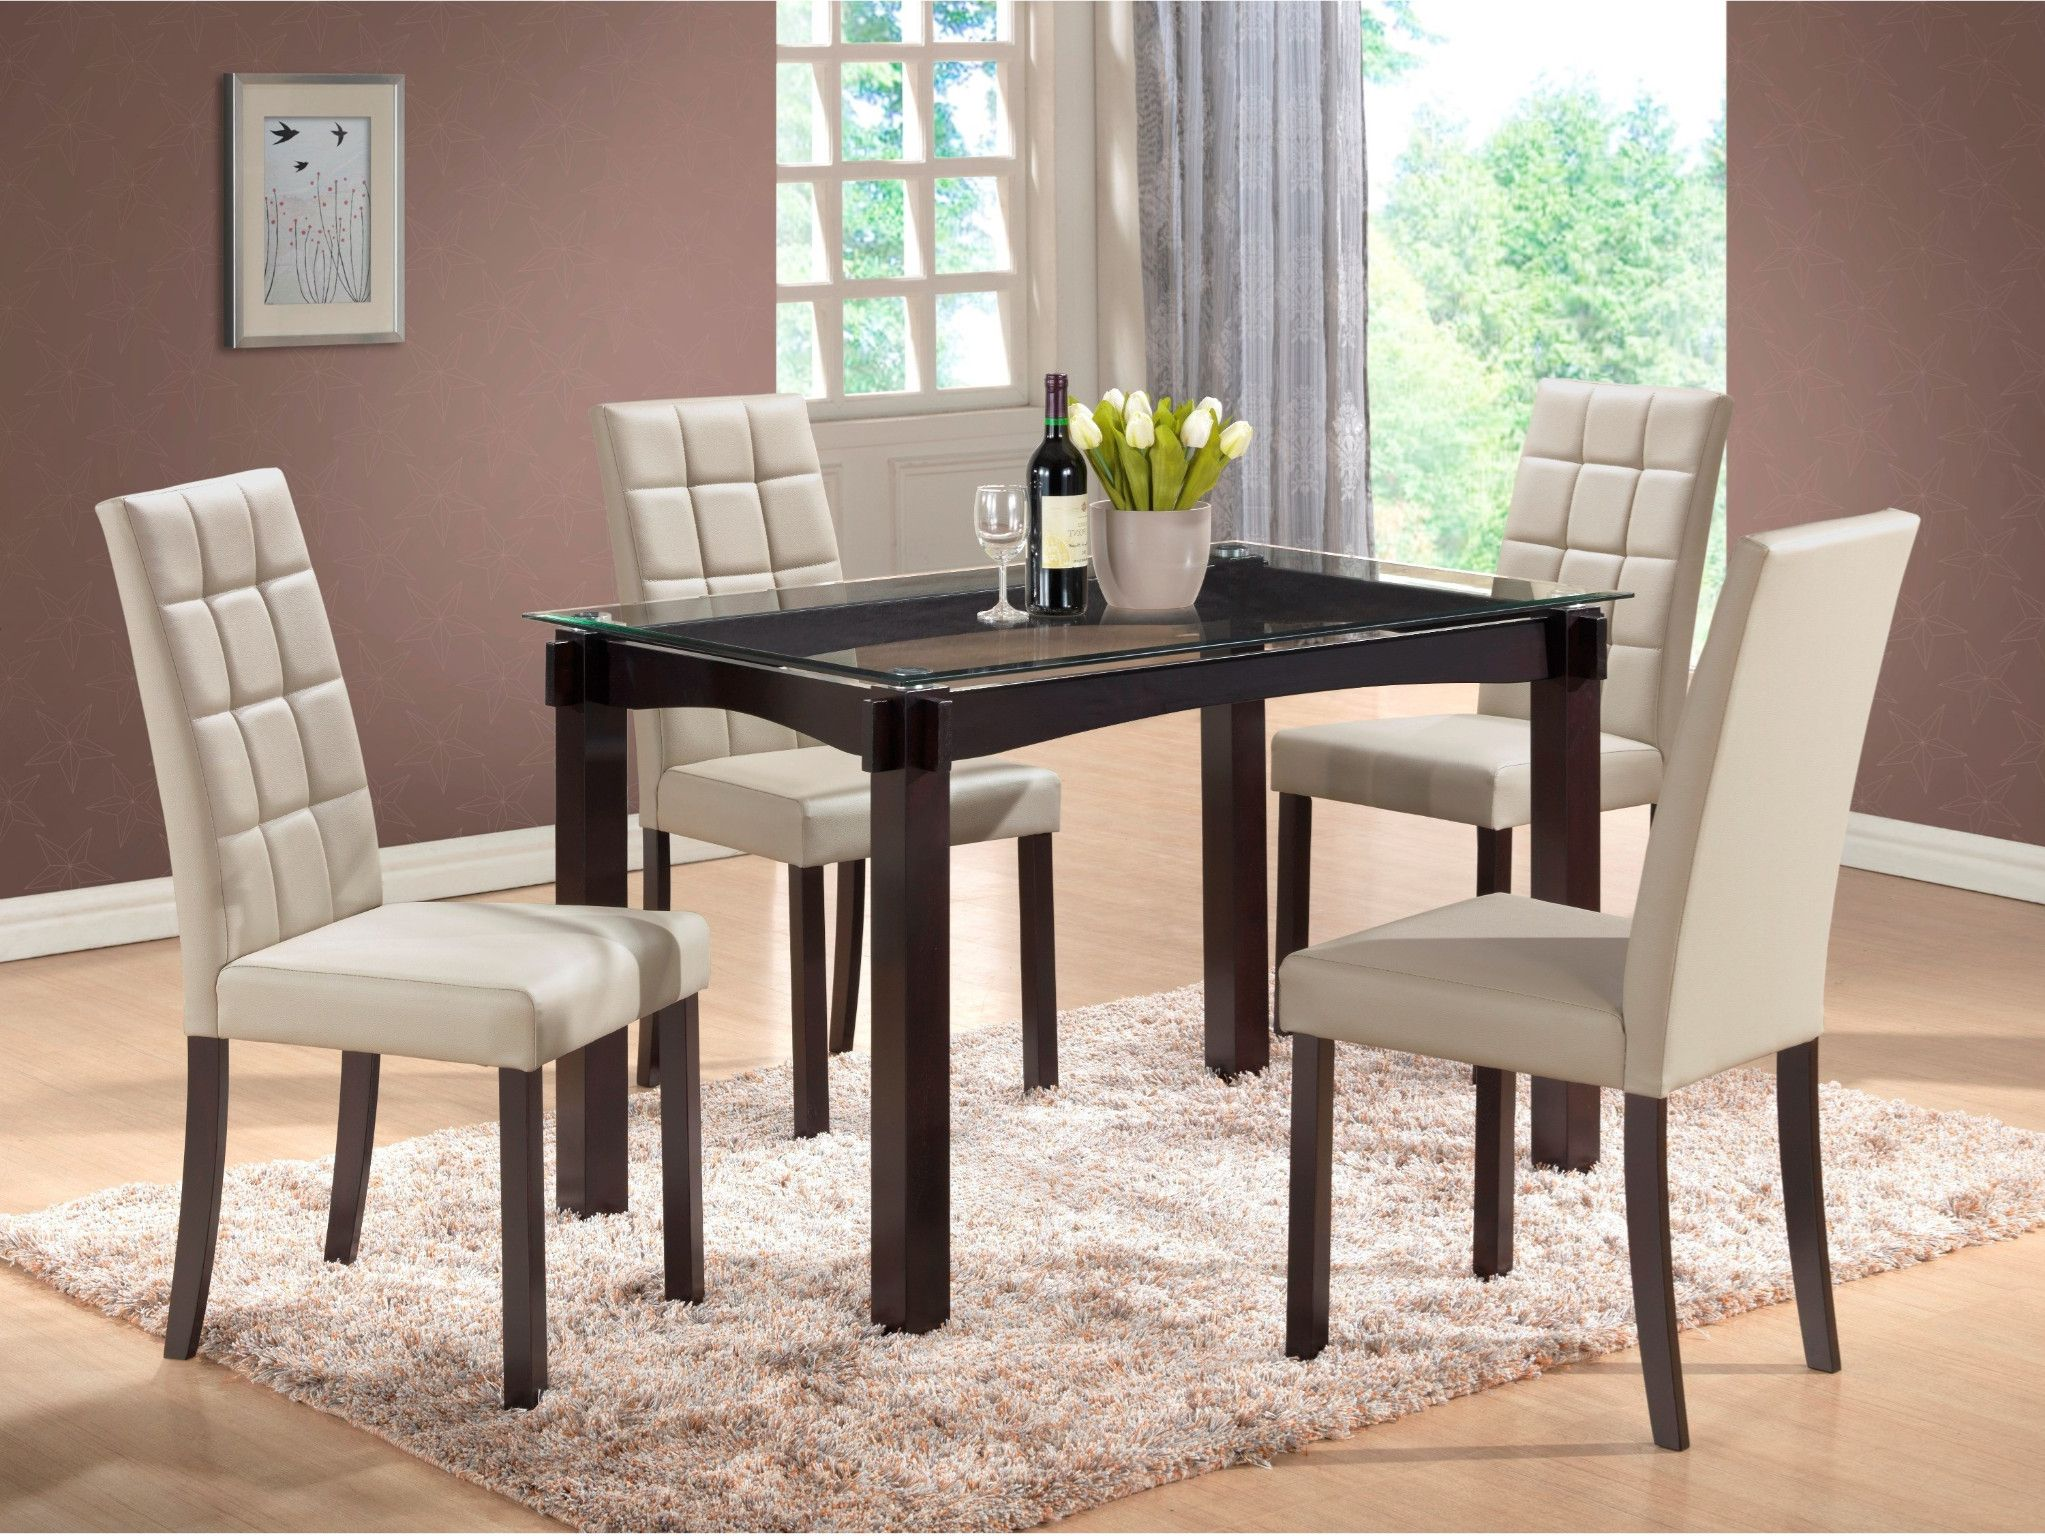 Zora 5 Piece Dinette Table And 4 Chairs 399 00 Table 36 X 60 X 30 H C M 1220 Gy Furniture Clearance Dinette Tables Furniture